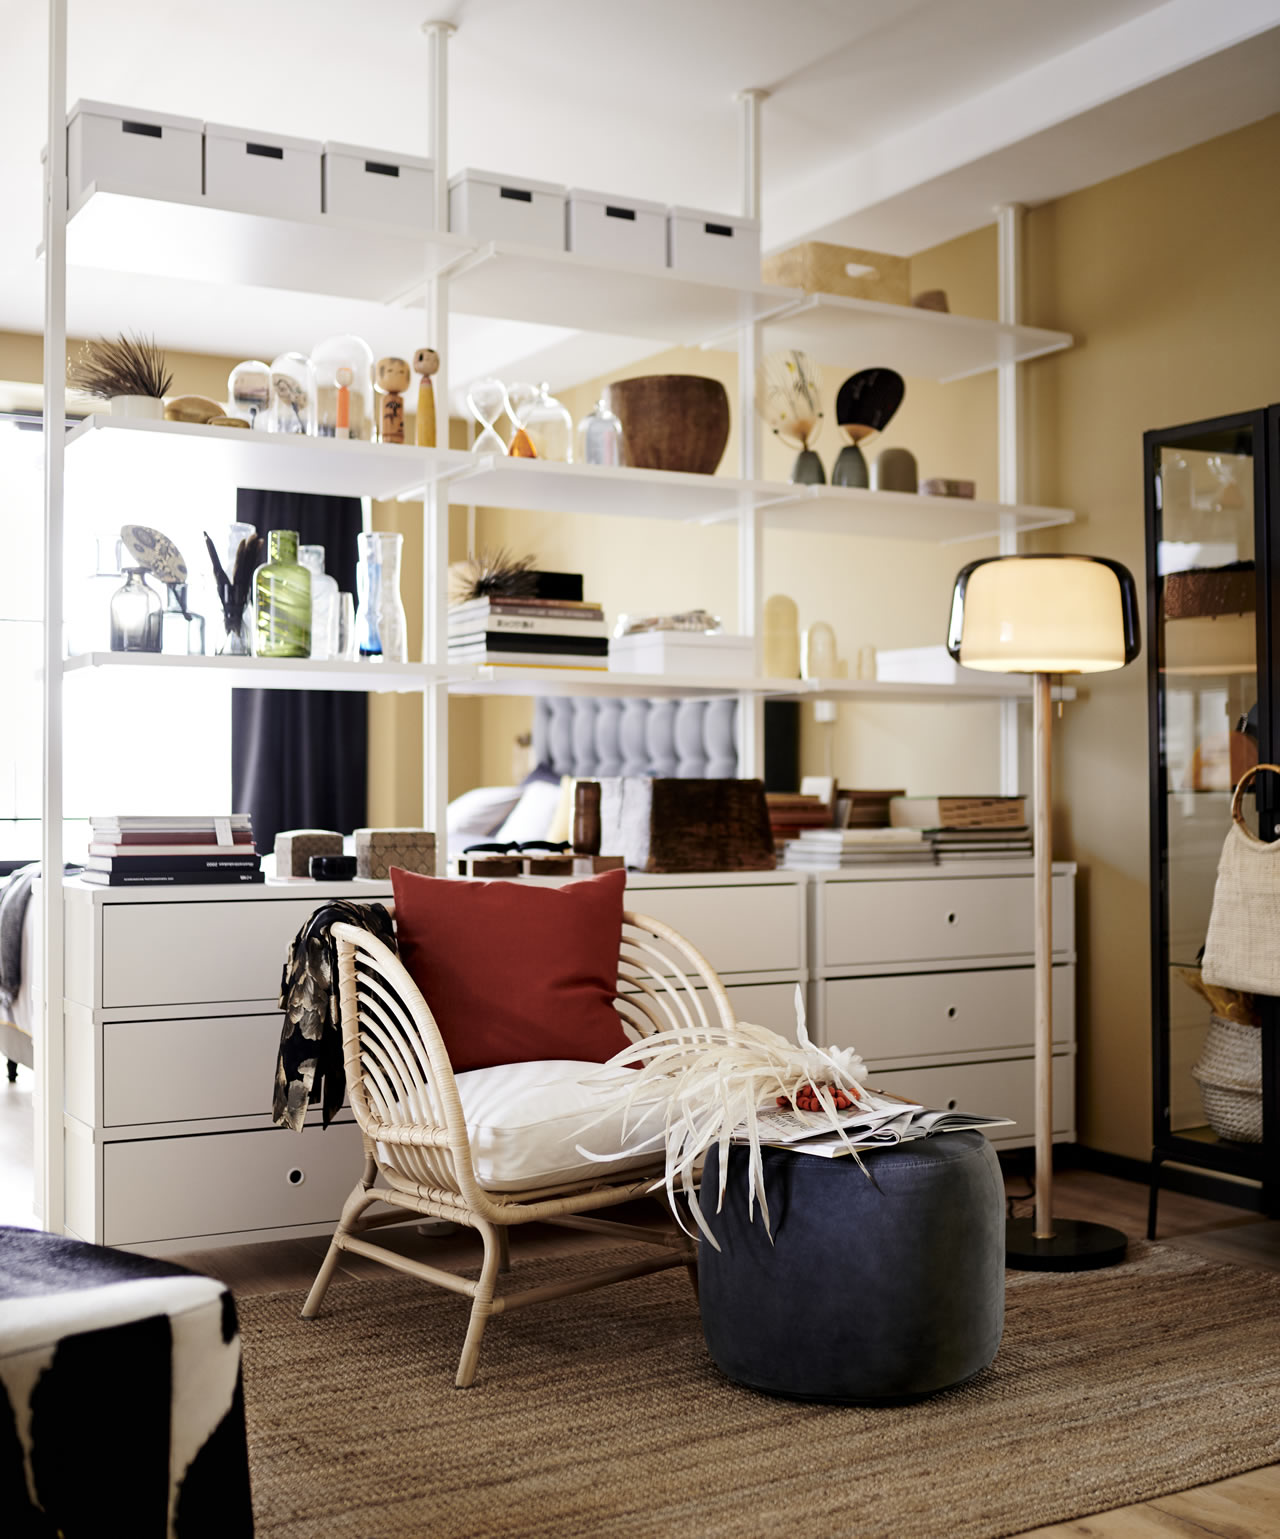 IKEA Ideas - An enlightened life – the joy of living with less